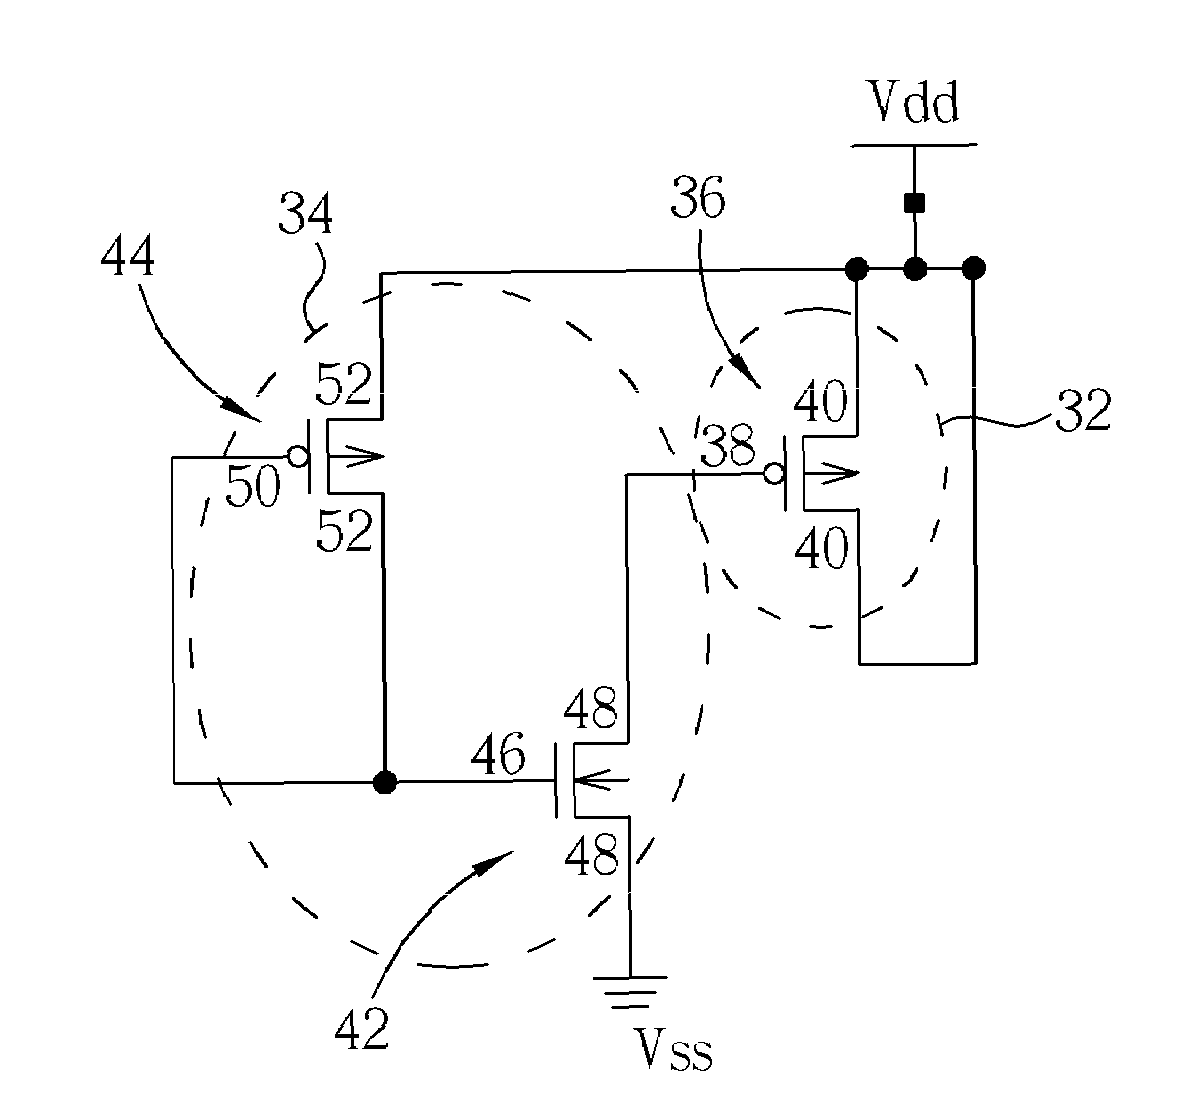 Analytics For Us Patent No 7705666 Filler Circuit Cell Mosfet Transistor The Tie Low Includes A Second Nmos And Pmos High Third